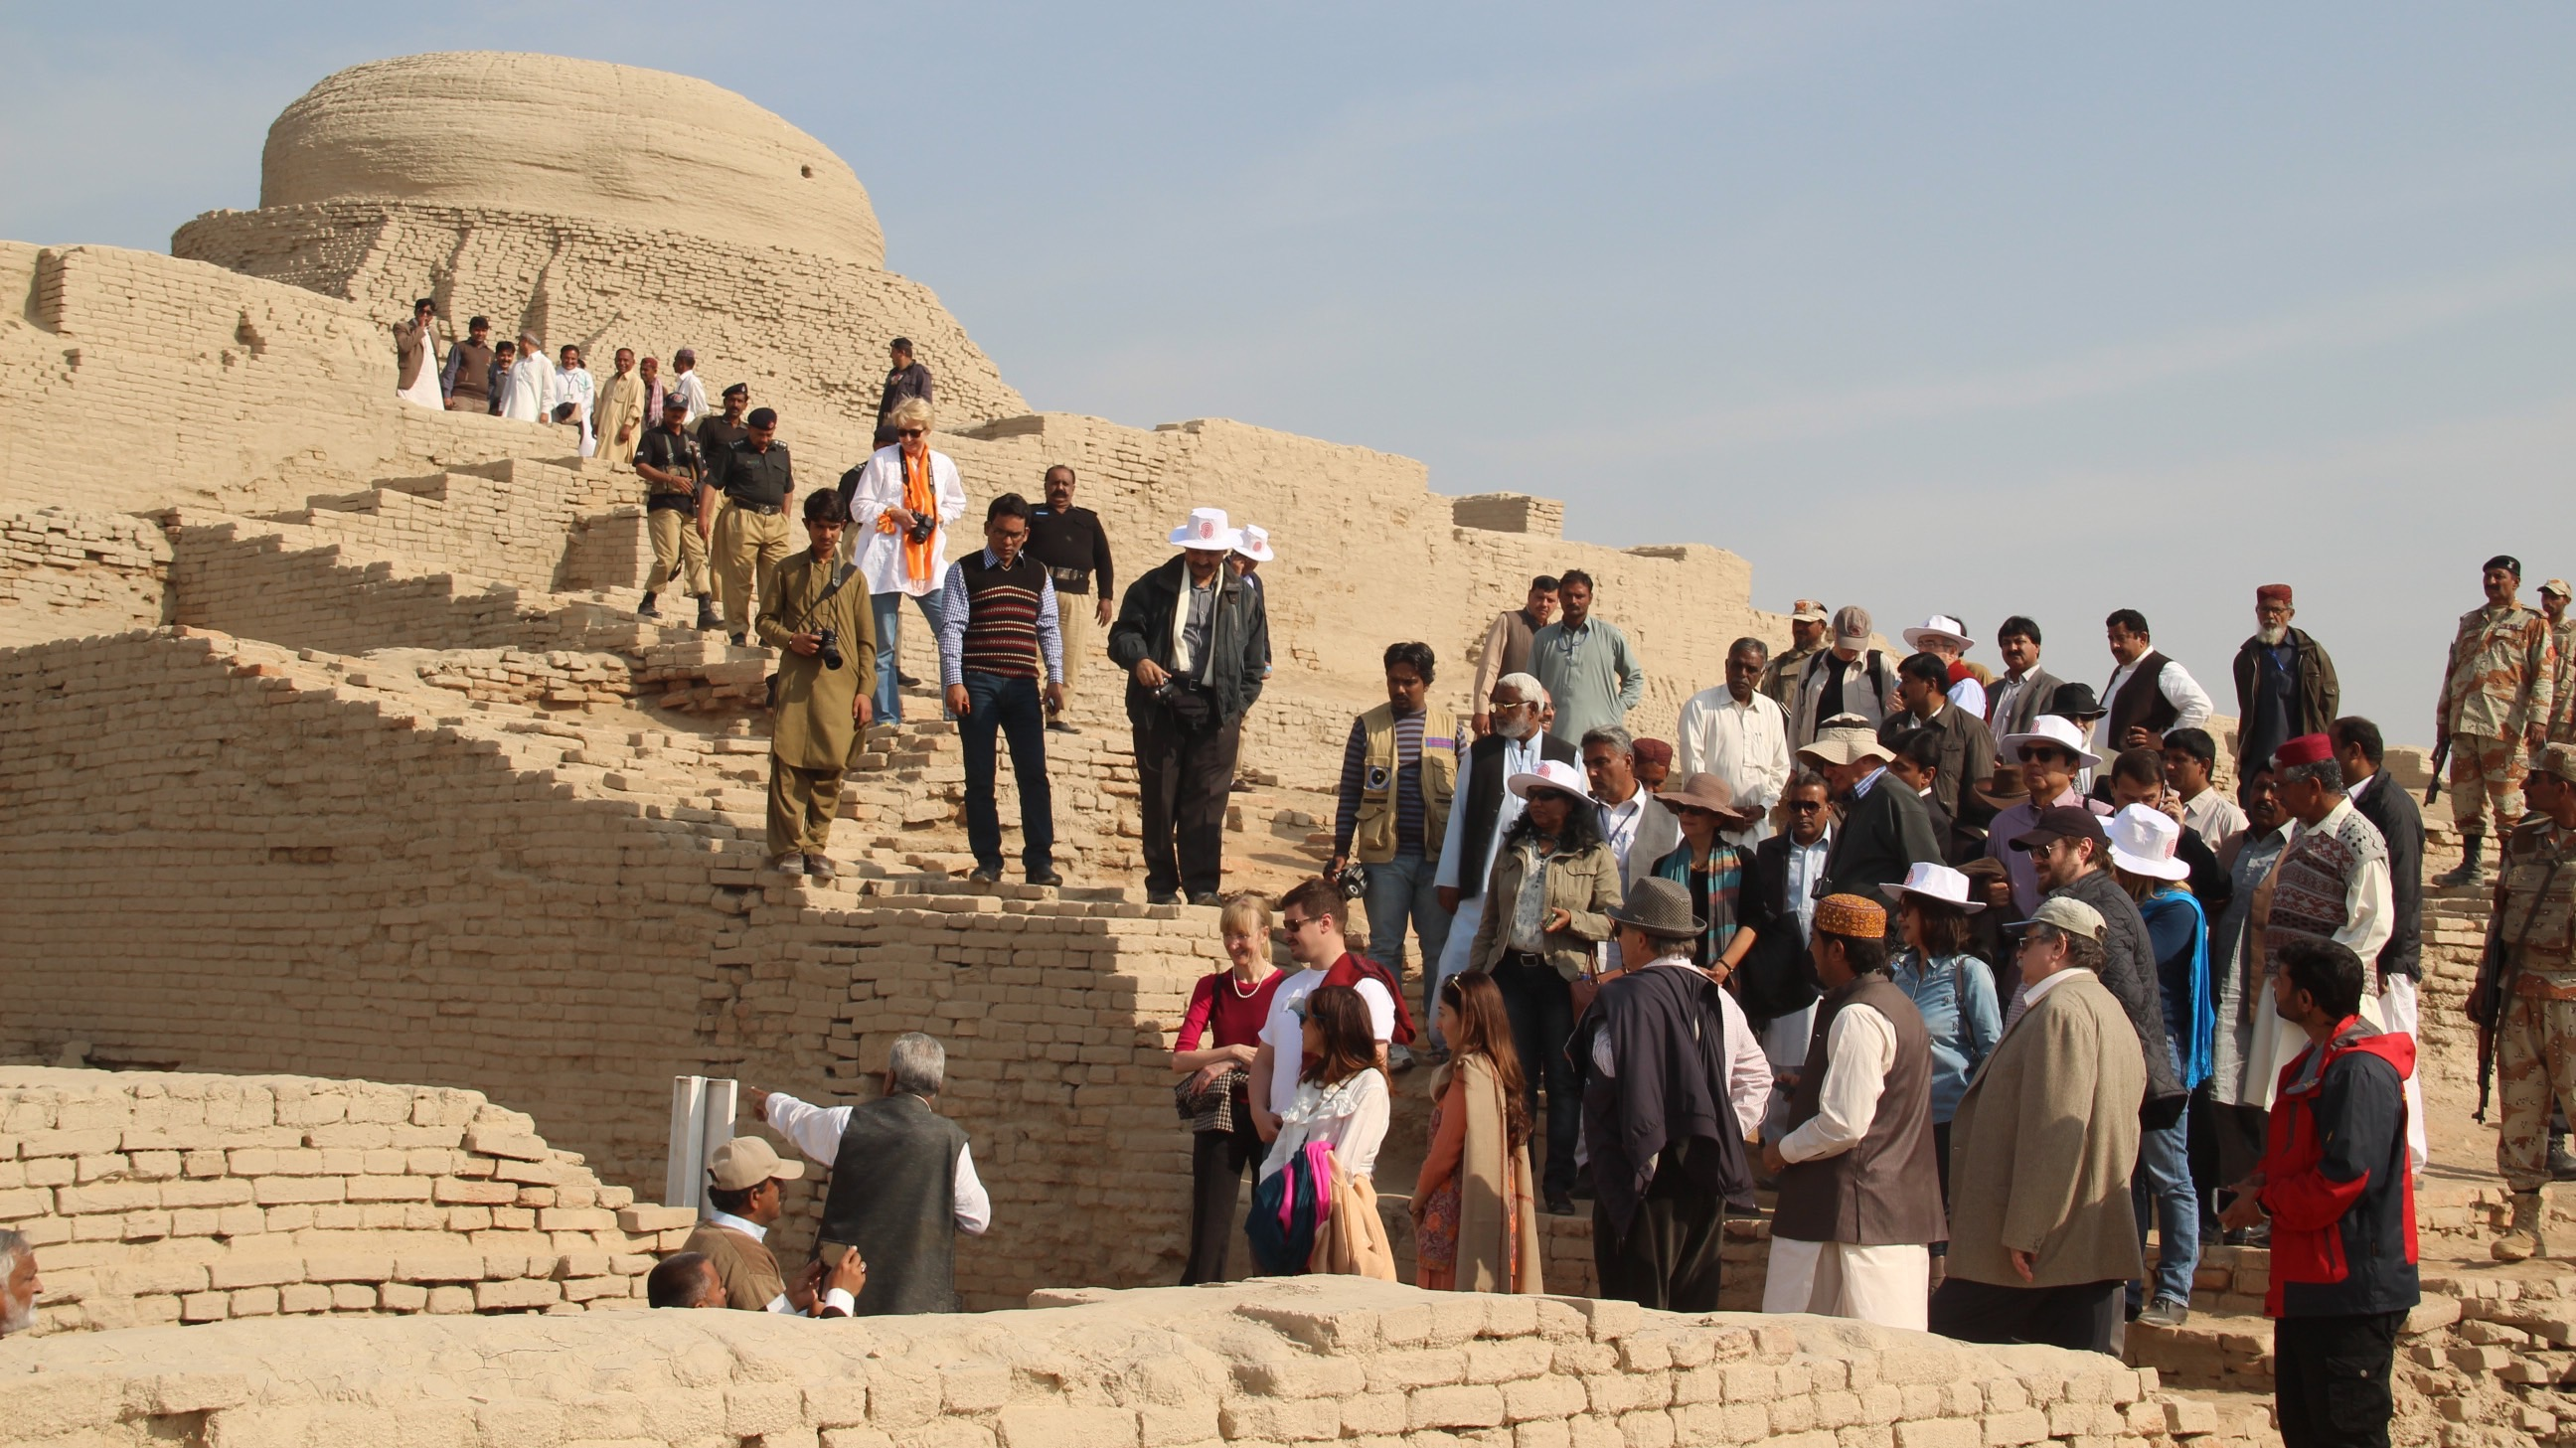 epa05077046 Ambassadors of foreign countries to Islamabad, visit archeological site Mohenjo-daro in Sindh province, Pakistan, 20 December 2015. Mohenjo-daro, literally meaning Mound of the Dead, is an ancient city built in about 2,600 BCE and was one of the main centers of the Indus Valley Civilization inhabited by about 50,000 people.  EPA/WAQAR HUSSAIN